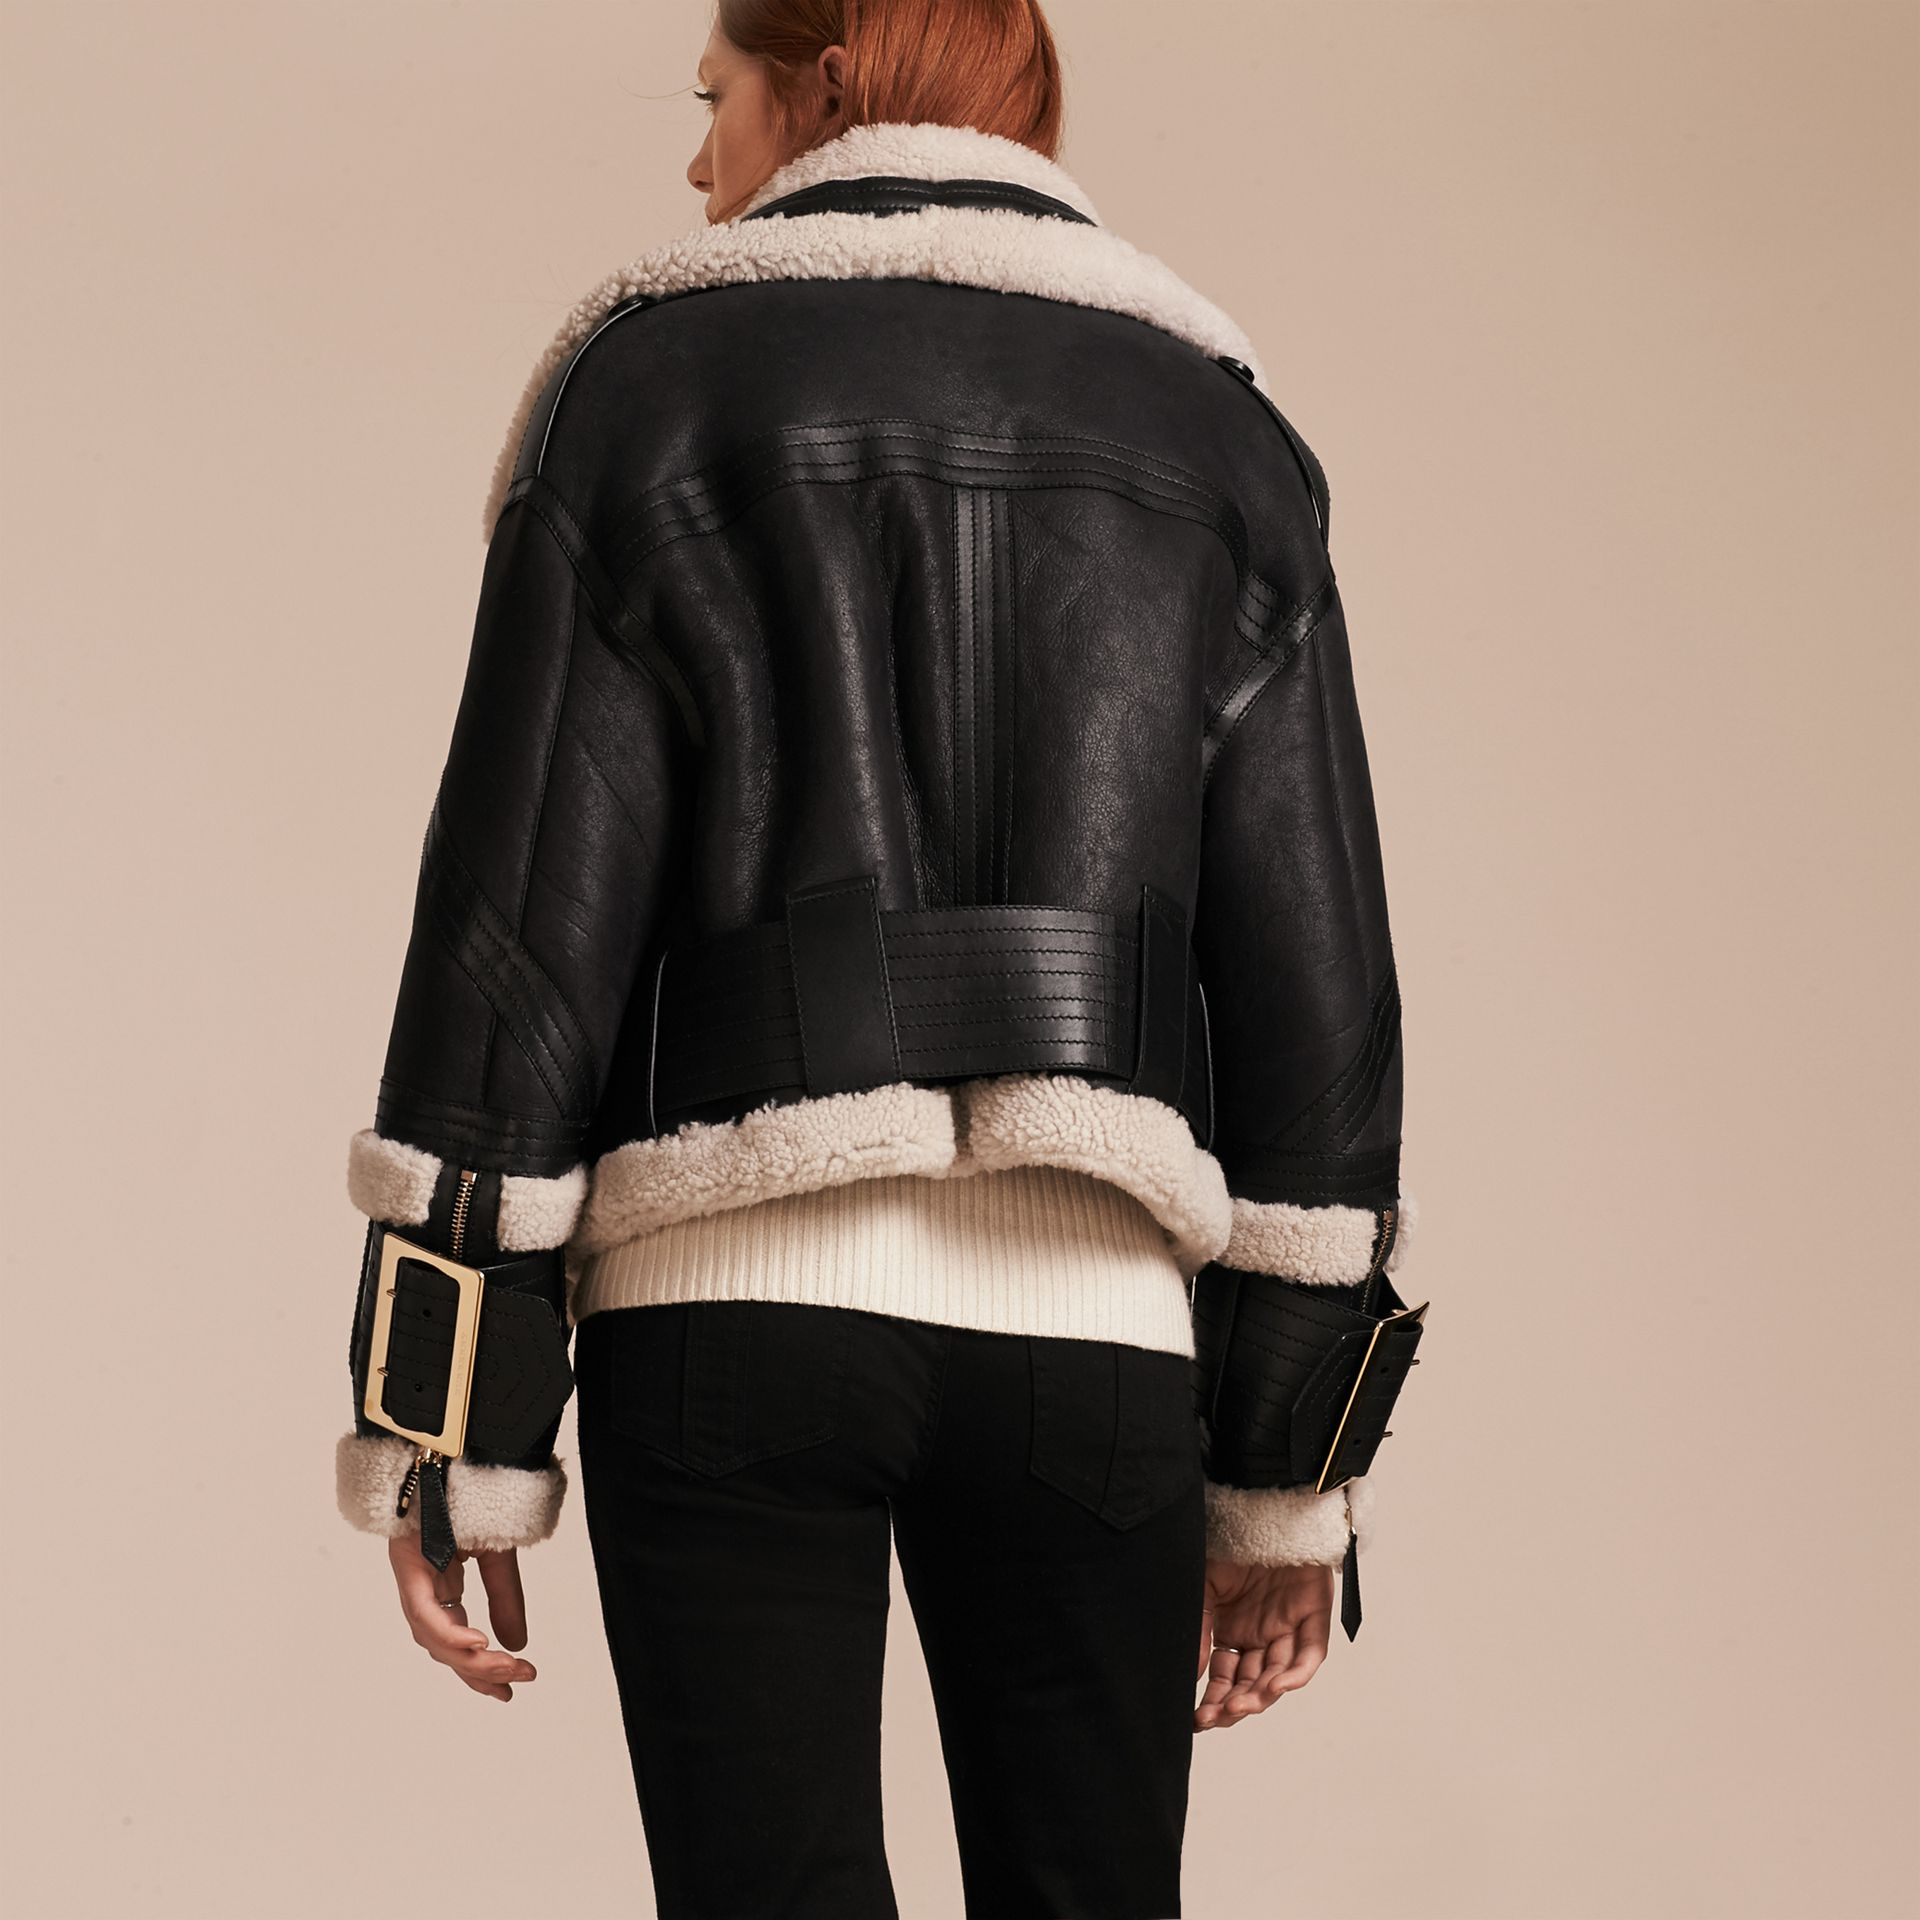 Black/ecru Shearling Aviator Jacket with Oversize Buckles - gallery image 3